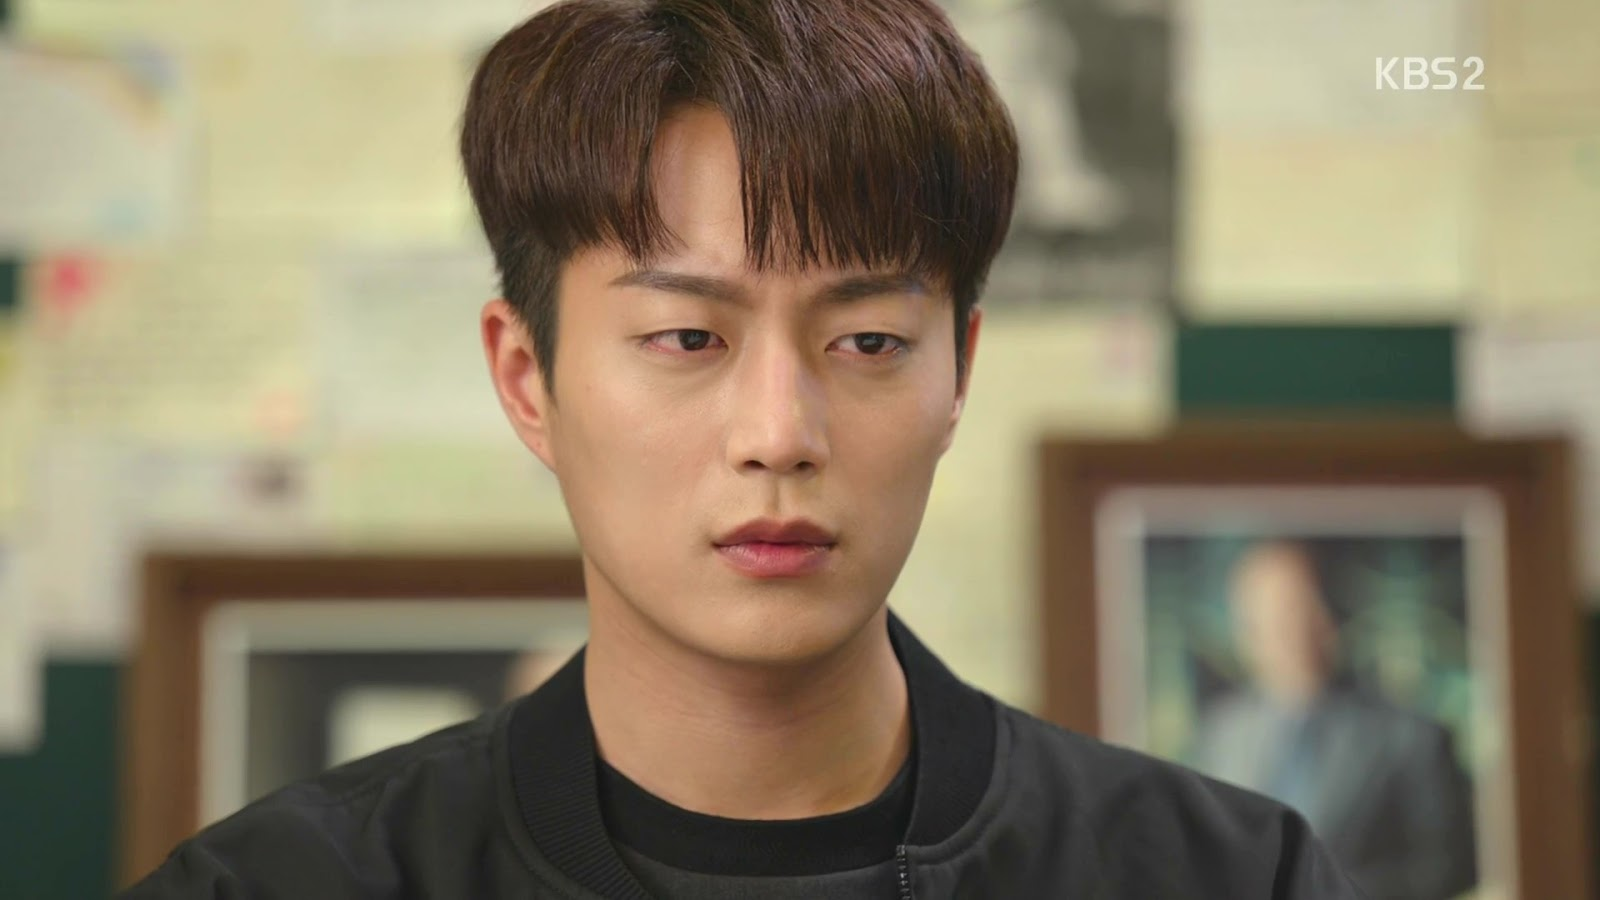 Marriage not dating ep 2 recap - How To Find The man Of Your type